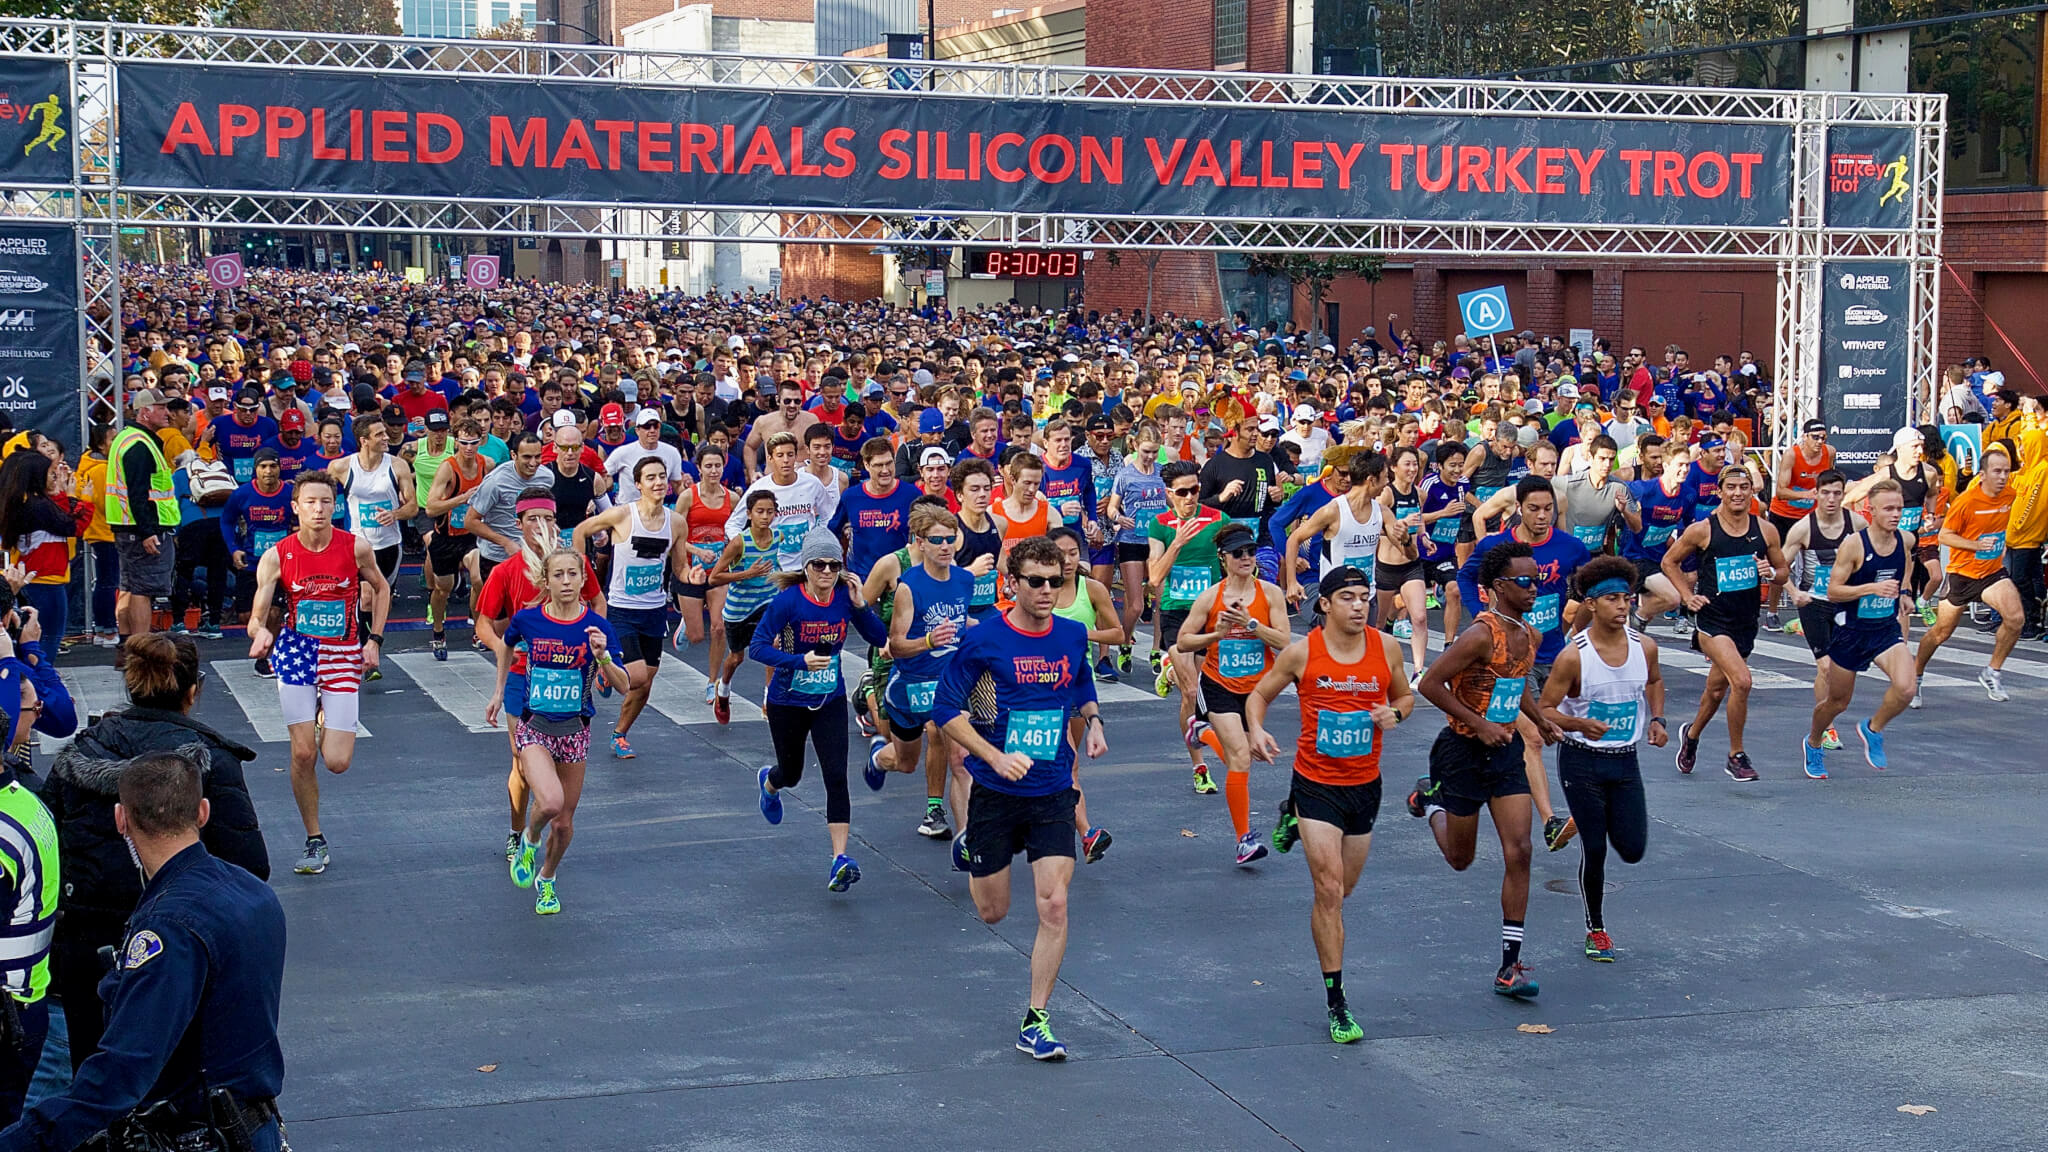 Silicon valley turkey trot prizes and awards